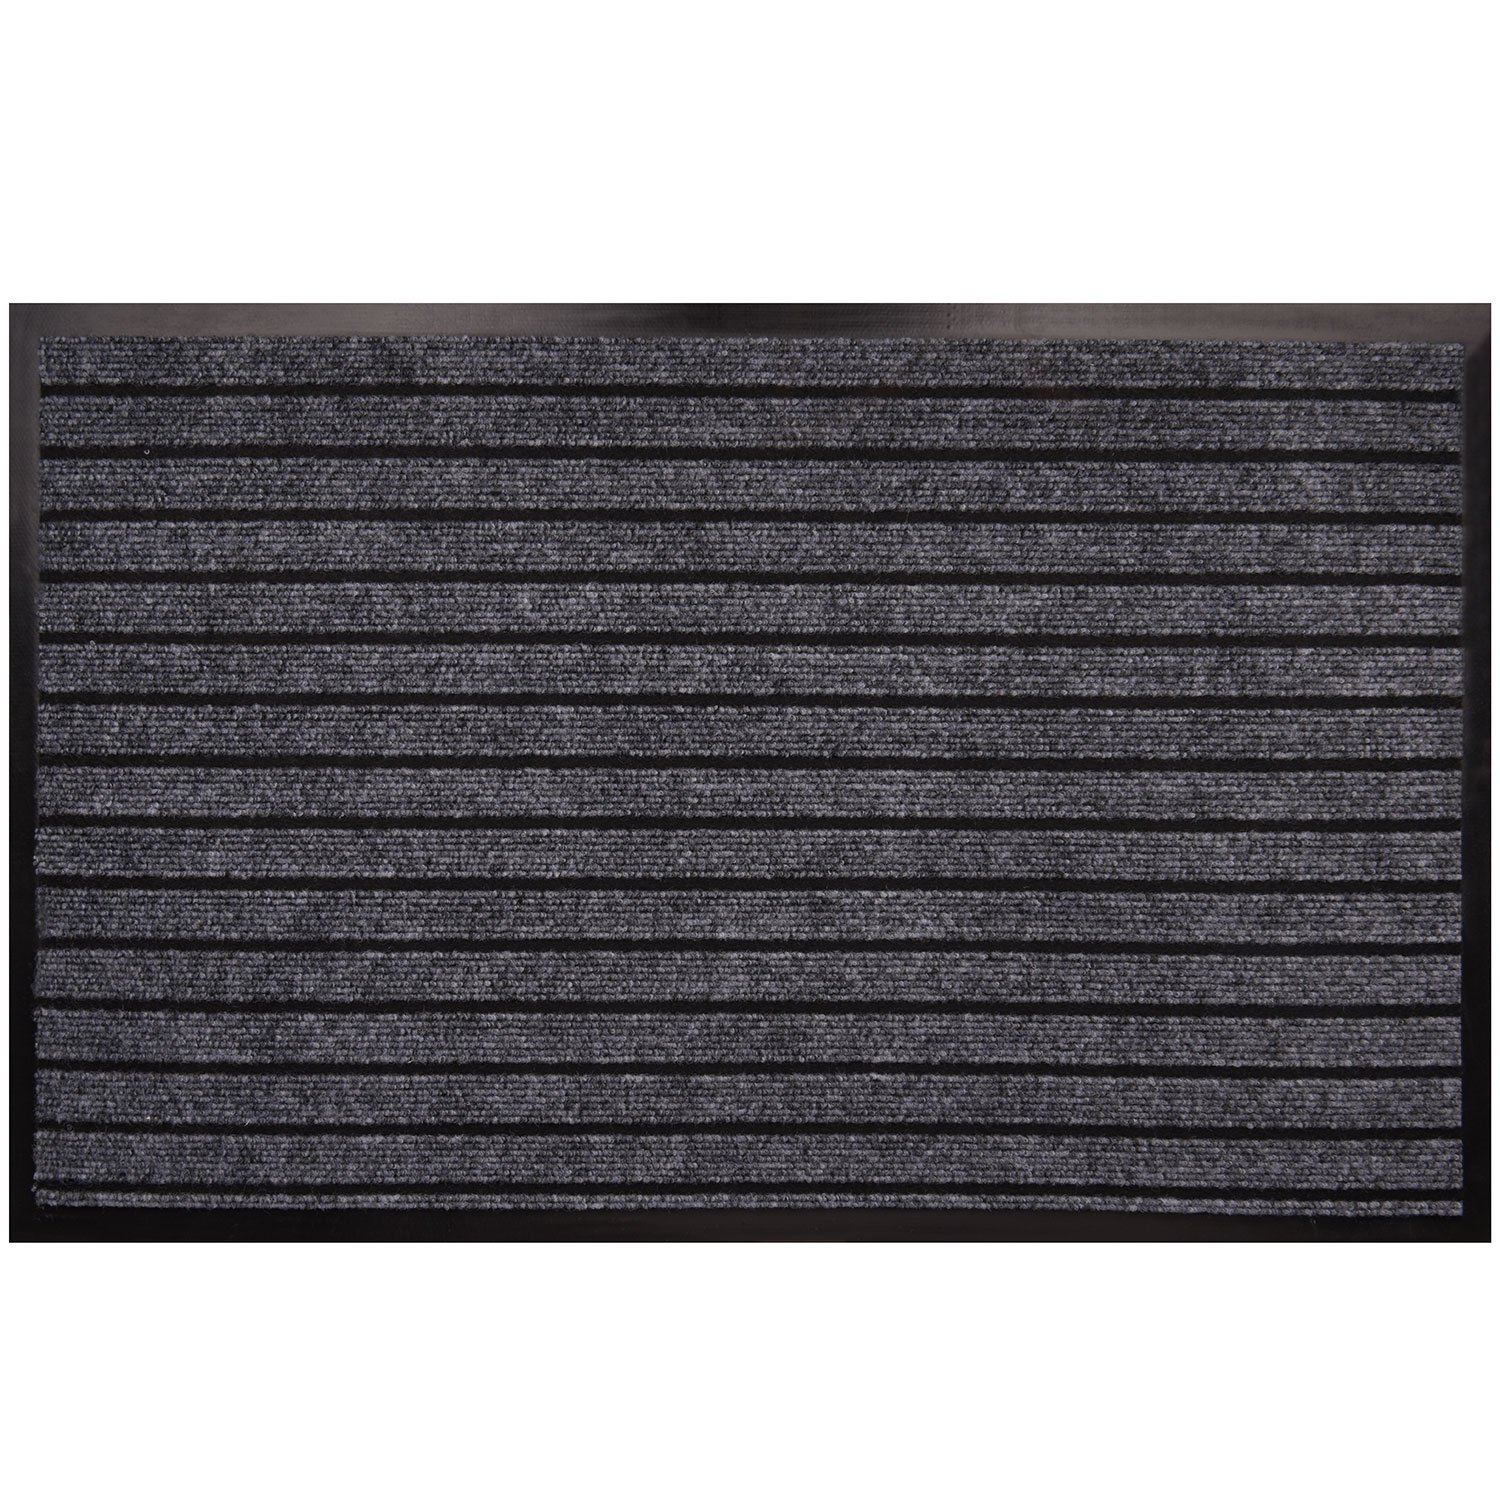 "Goodxin XX1-3 Indoor Outdoor Mats Rubber Entrance Doormat Dirt Debris Mud Trapper Waterproof Out Door Mat Low Profile Washable Carpet (31.5""X20"", Light Grey)"